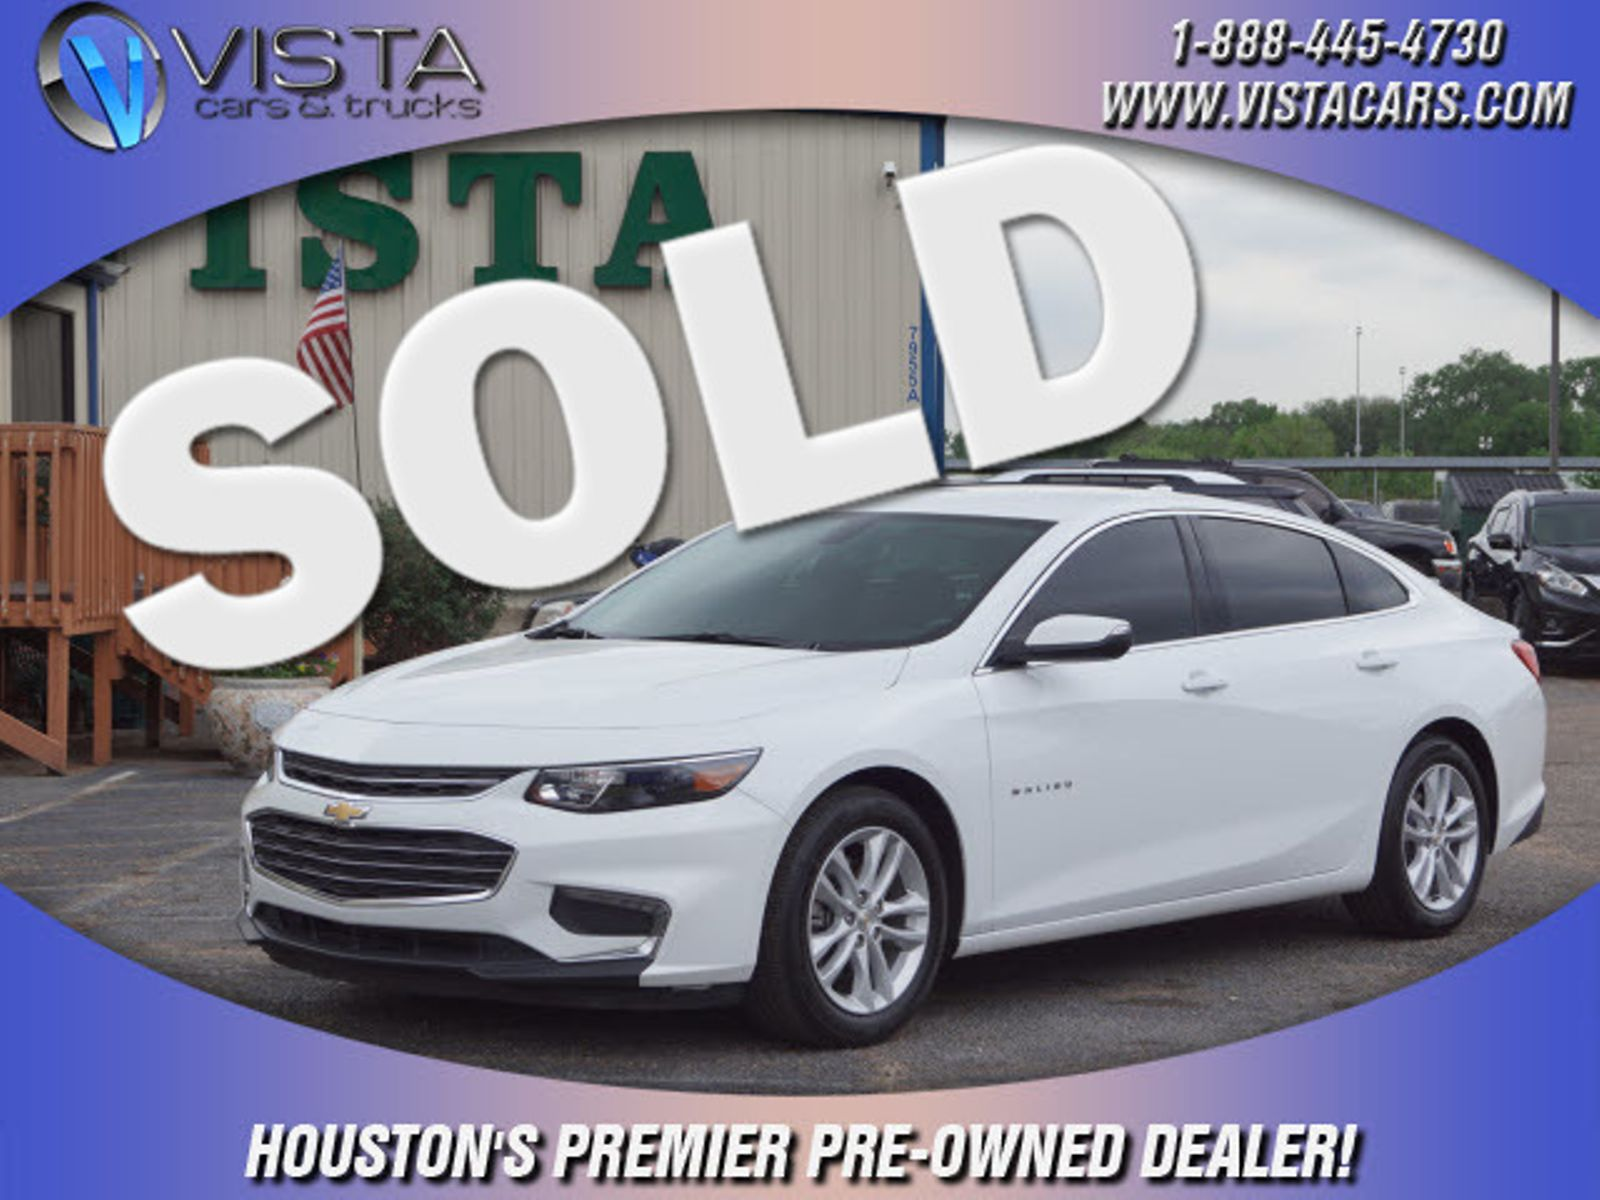 tx demontrond dealer a car near is chevrolet colorado and texas houston new city dealers